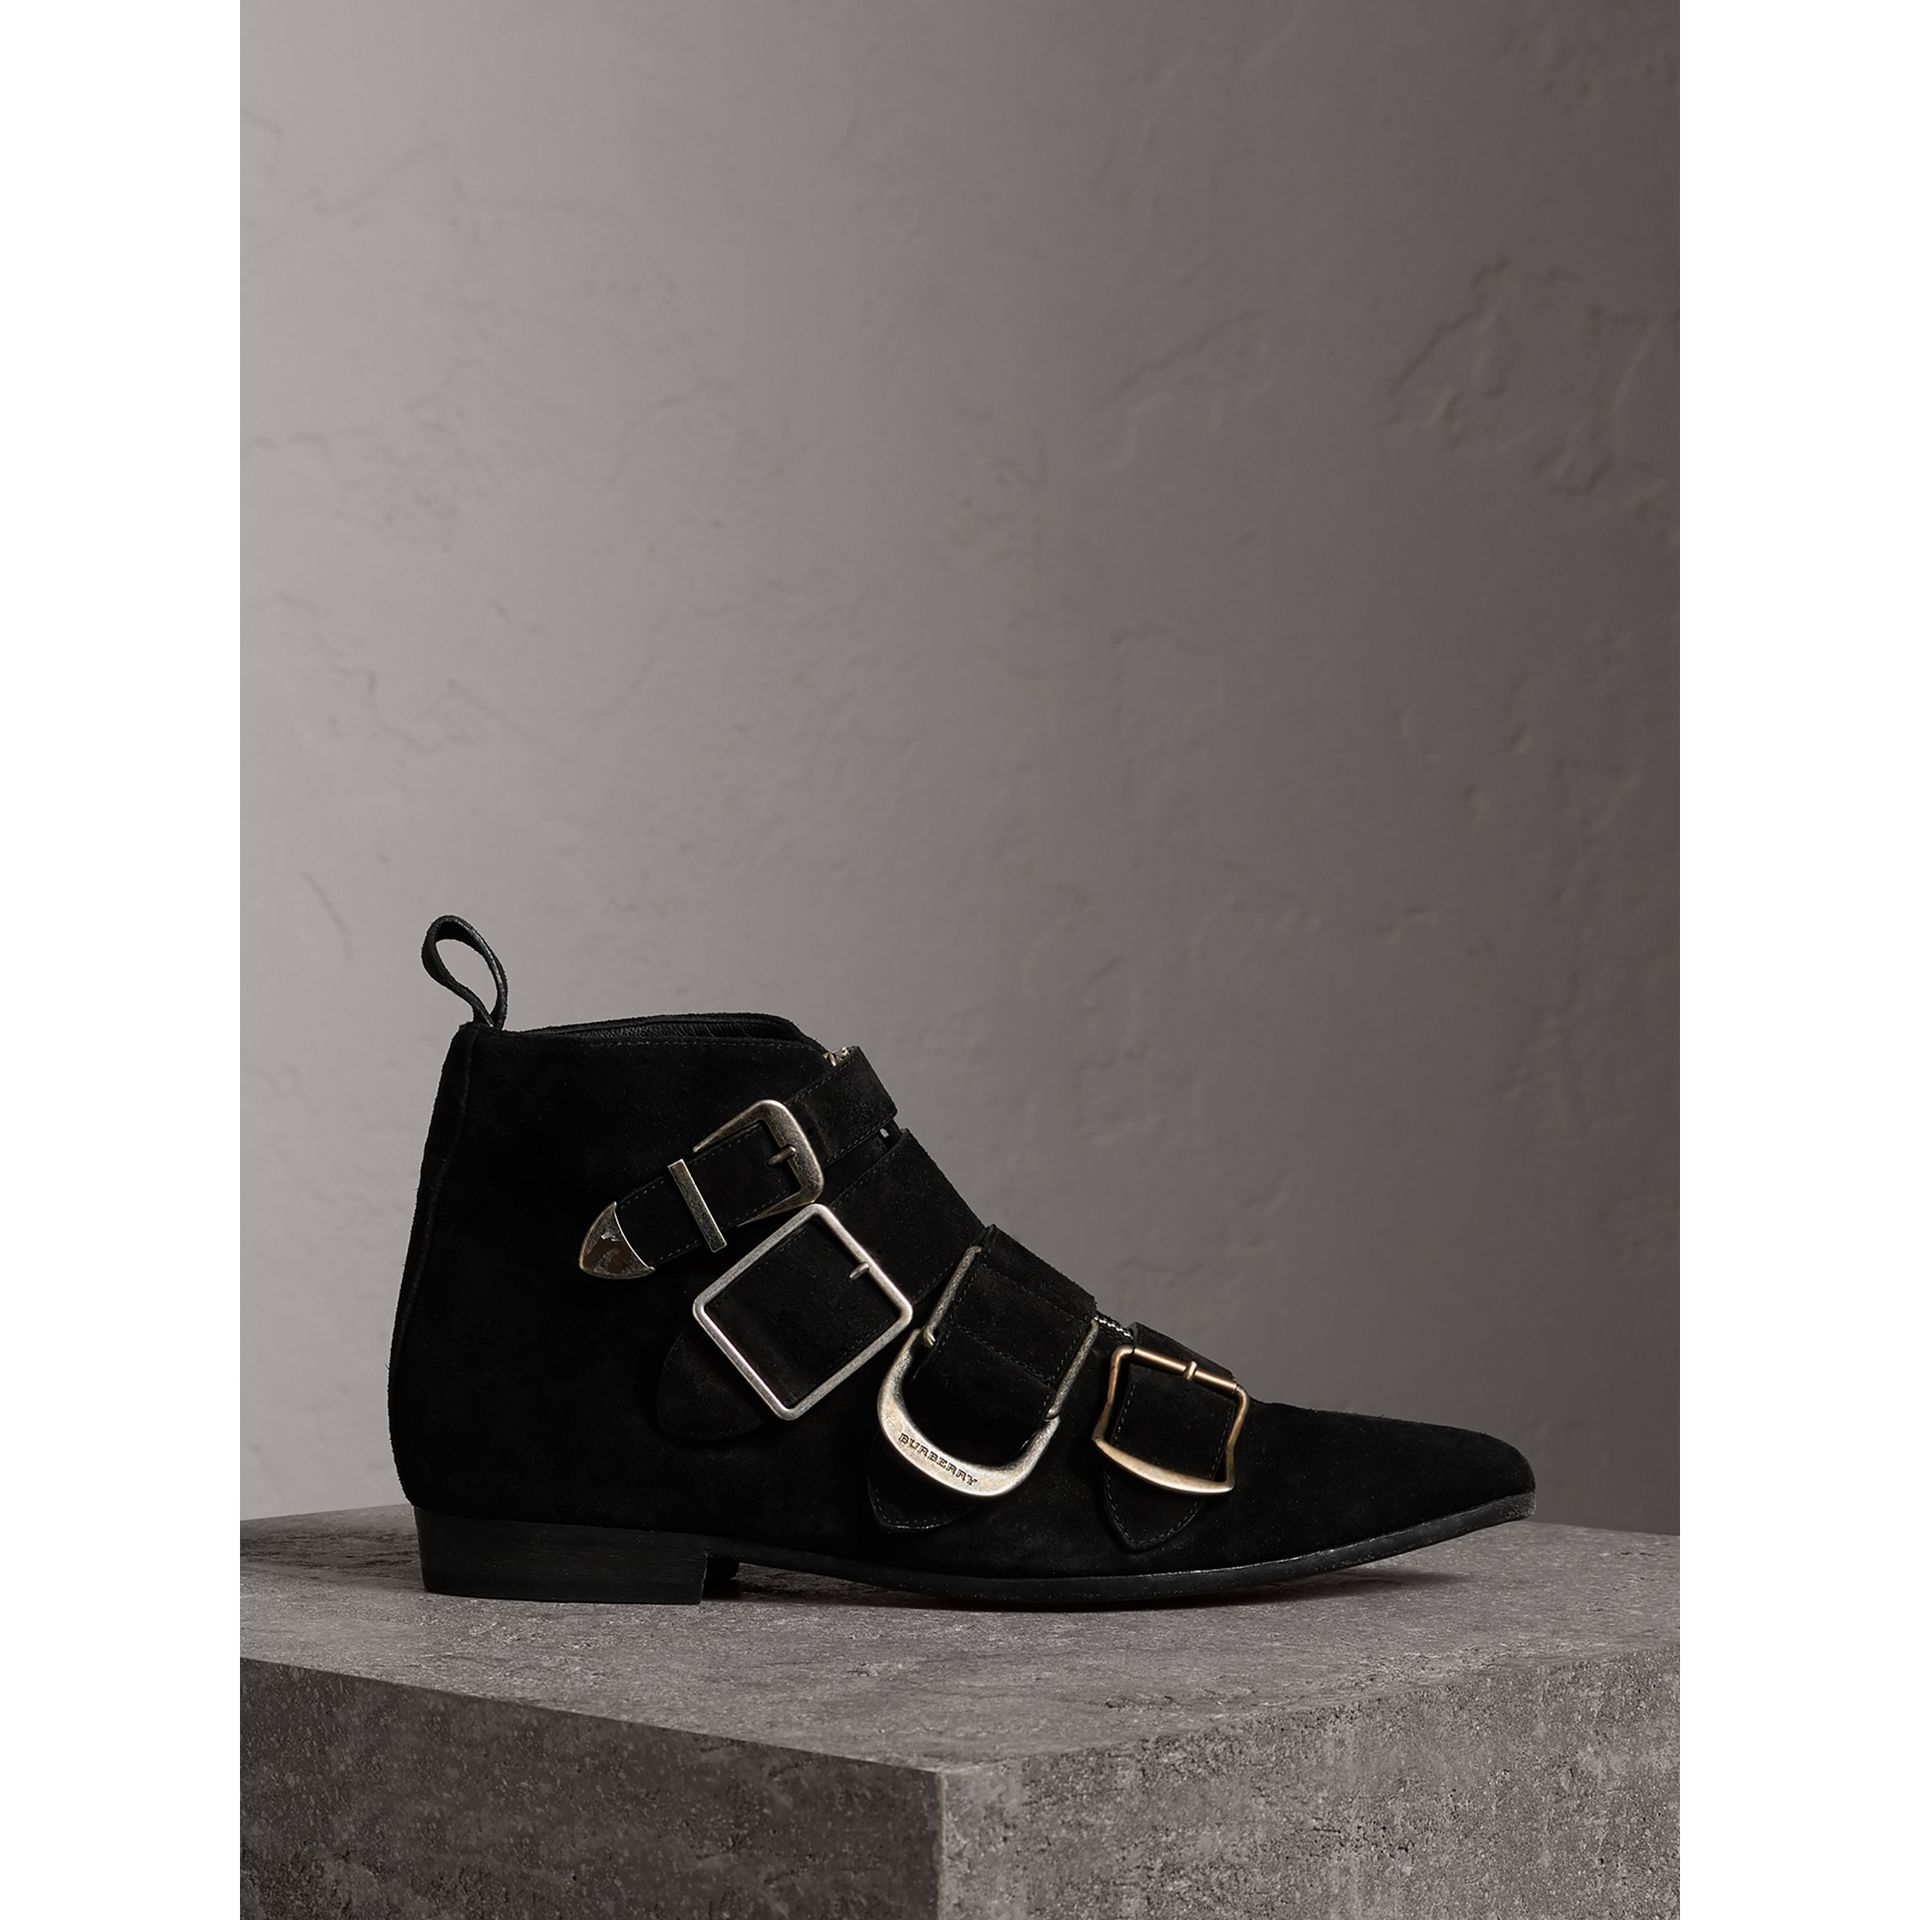 Bottines en cuir velours avec boucles (Noir) - Femme | Burberry Canada - photo de la galerie 0